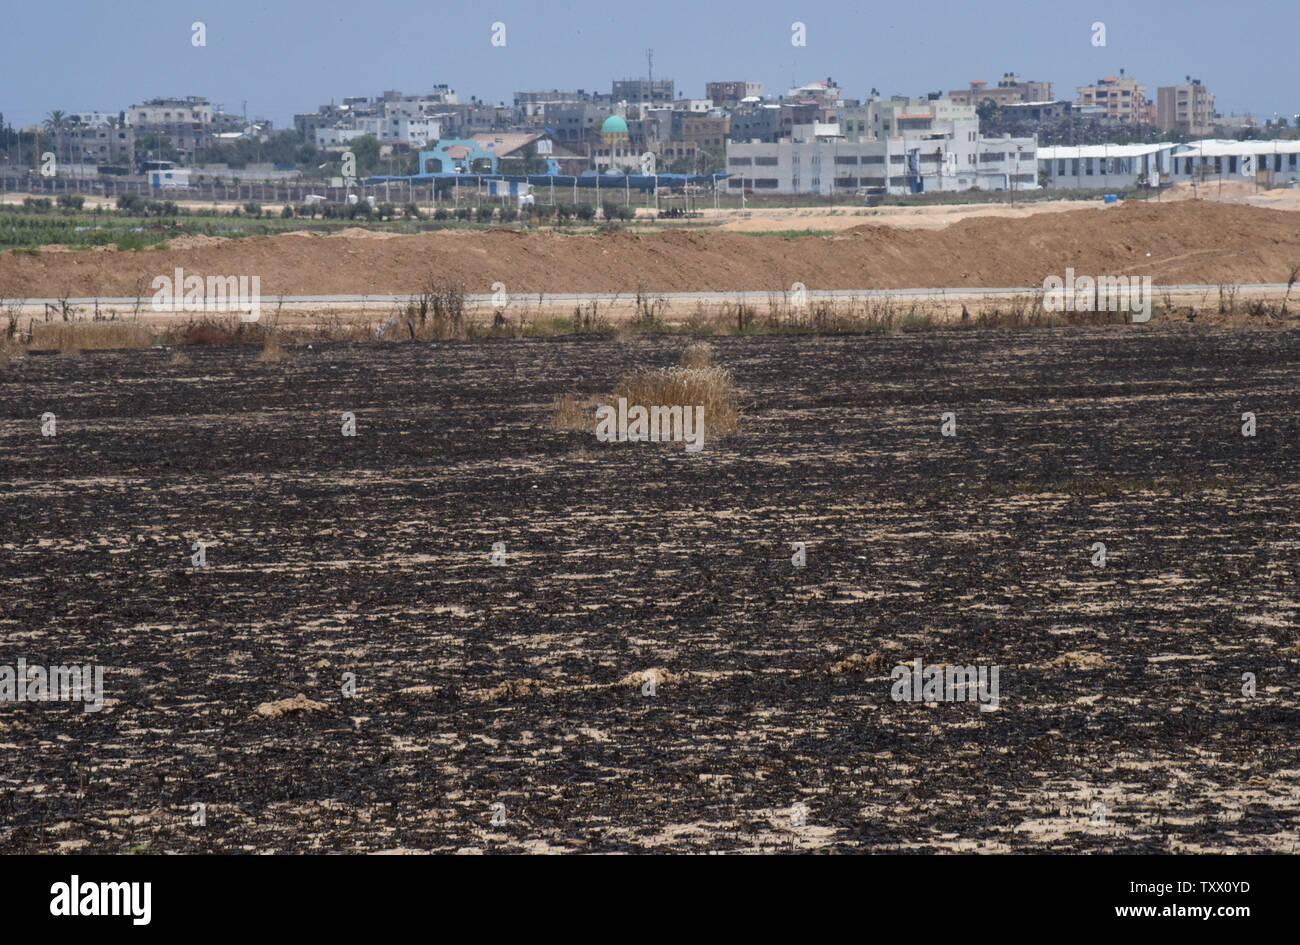 Houses in the Gaza Strip are seen behind wheat fields in Kibbutz Nahal Oz, on the Israeli- Gaza border, that were burned by fires started by kites sent by Palestinian protesters in Gaza, June 5, 2018. Over 600 kites have been flown into Israel from the Gaza Strip, destroying 9000 square meters of crops and forests.    Photo by Debbie Hill/UPI - Stock Image